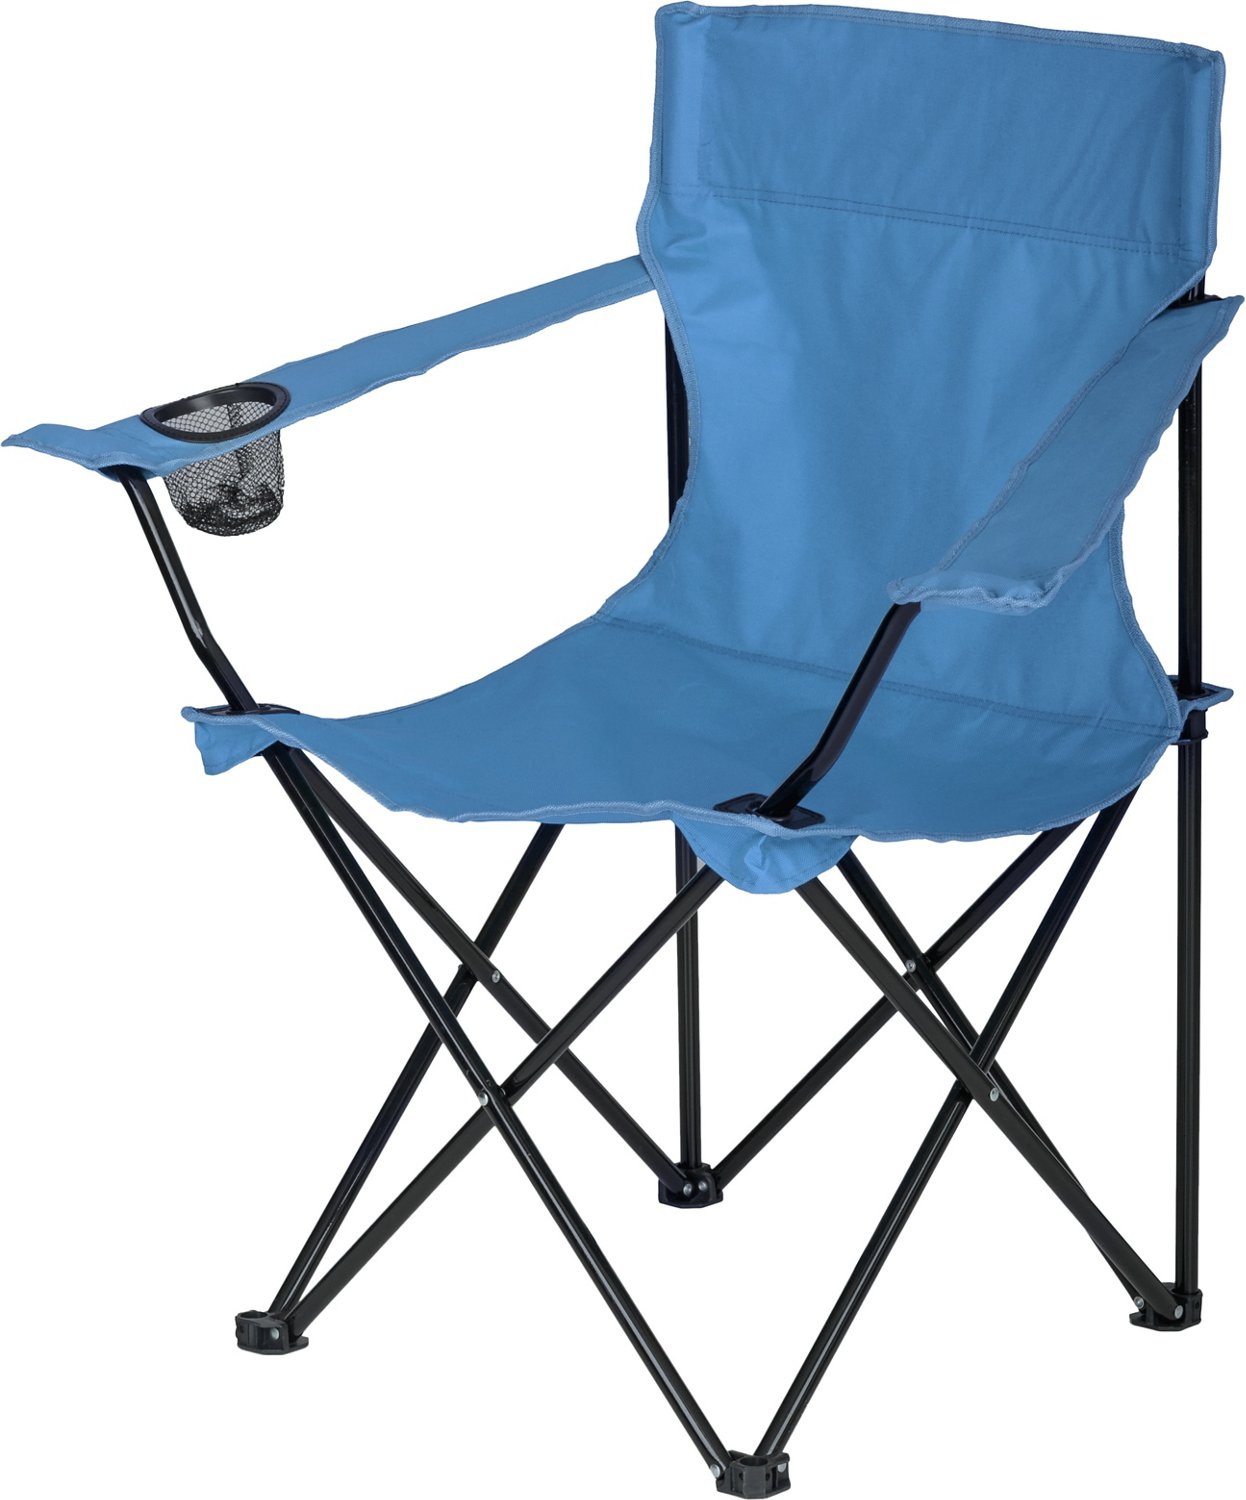 academy sports folding chairs consumer reports lift plastic wooden fabric and metal